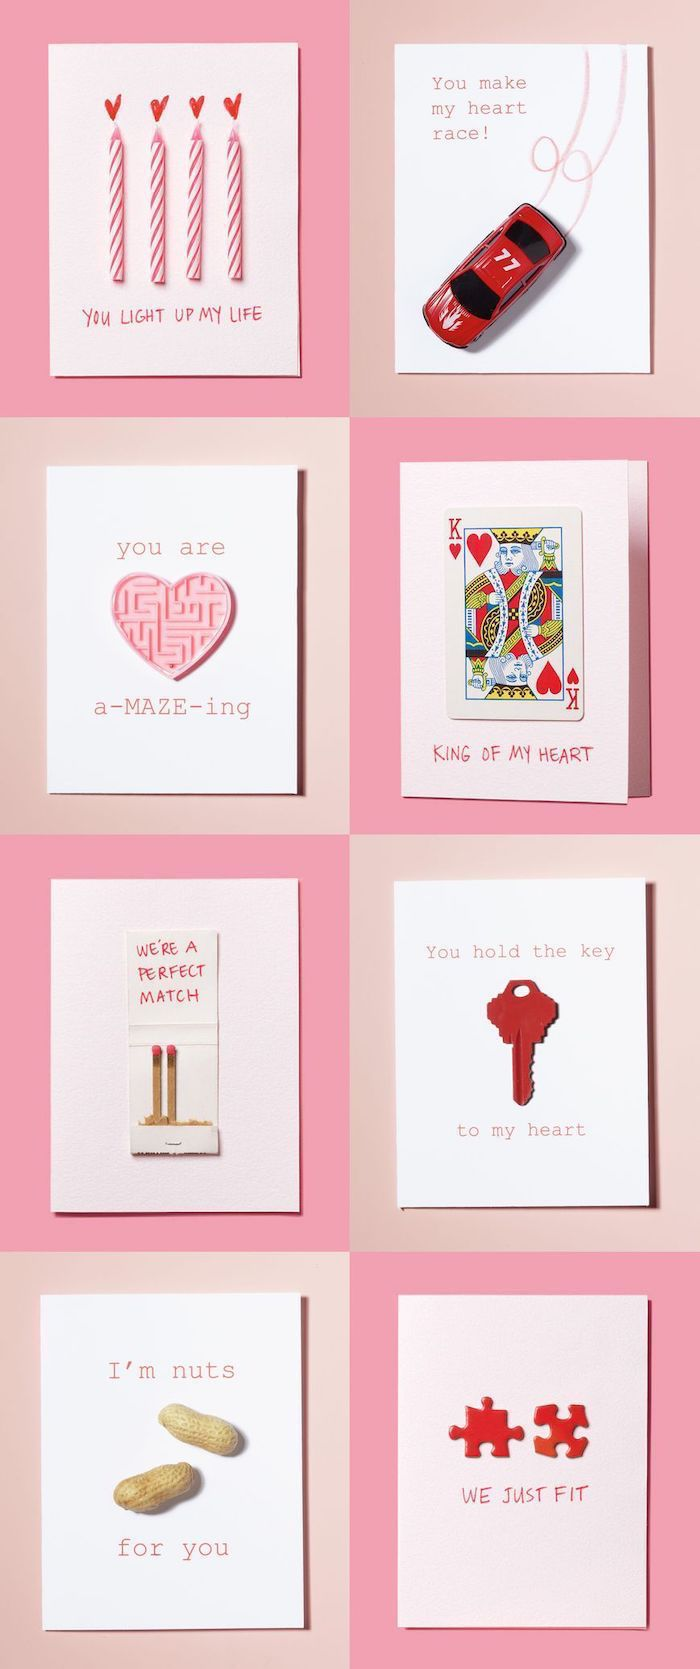 valentine's day handmade cards, special funny messages, creative valentine's day gifts for boyfriend